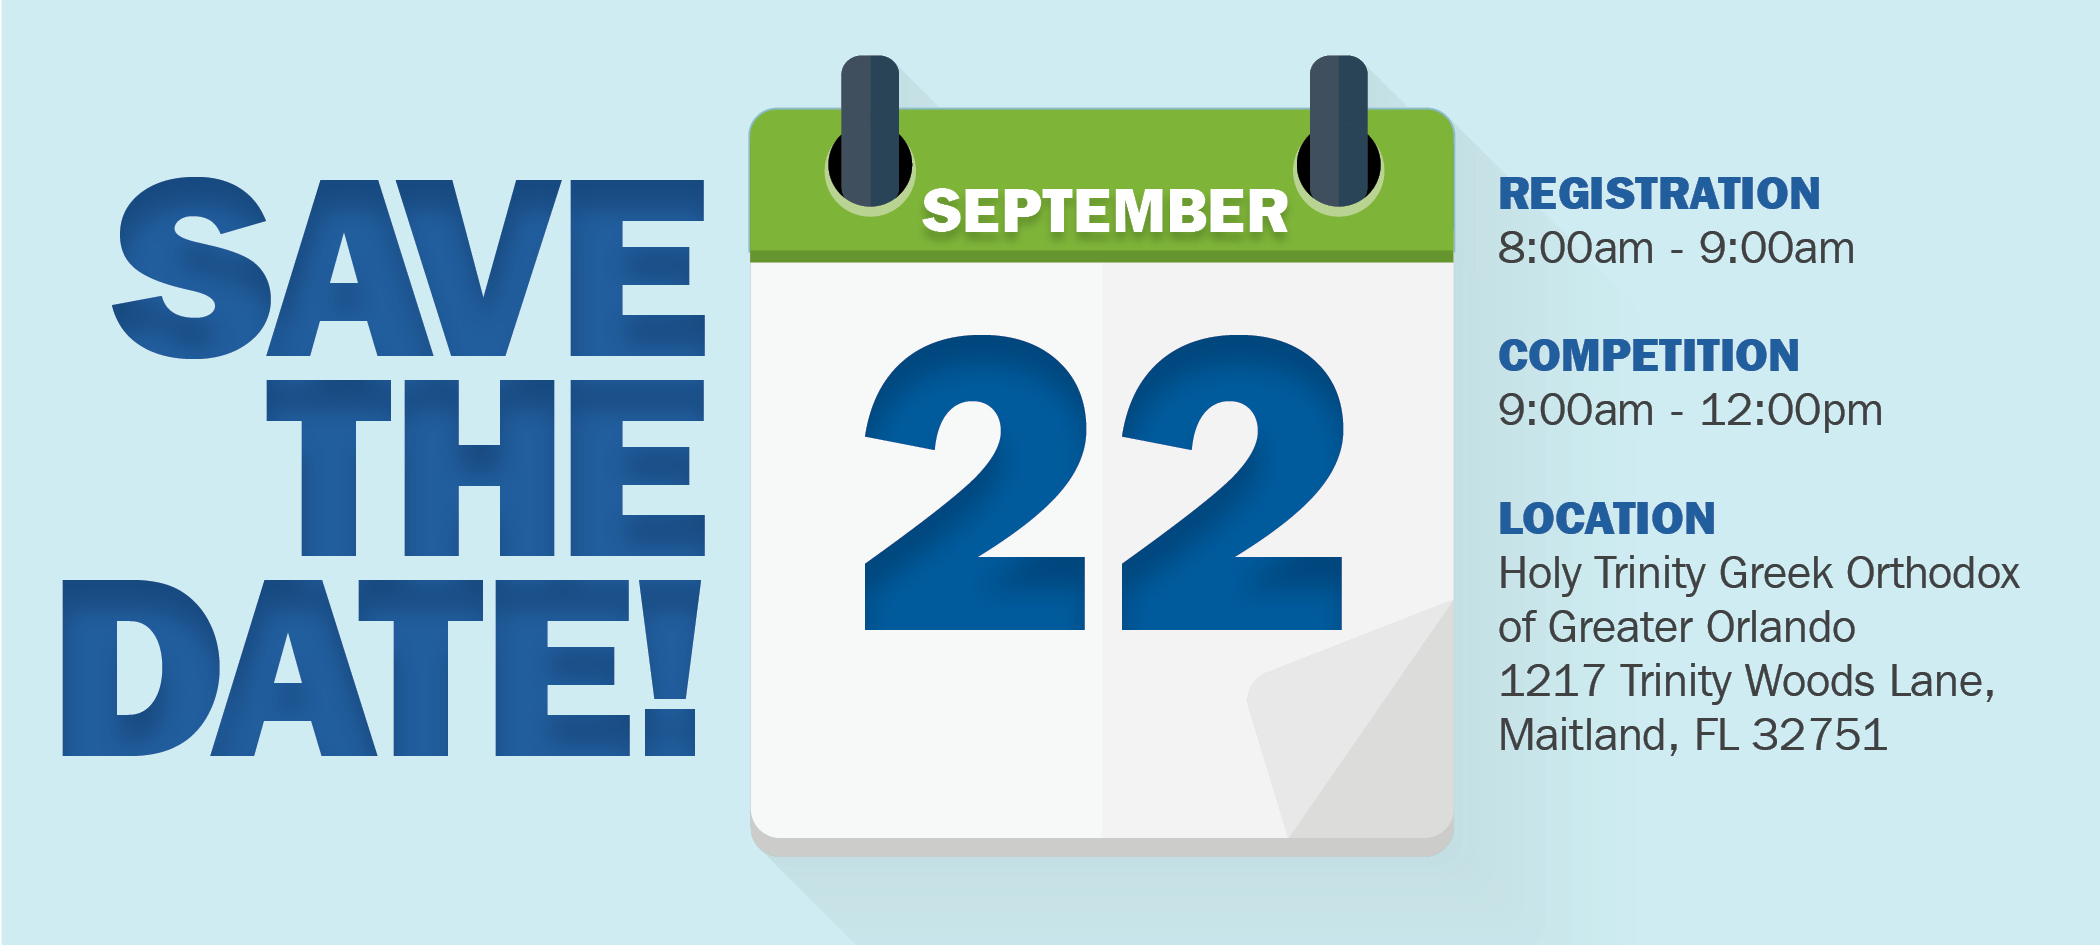 Save the Date Graphic for Web2.jpg